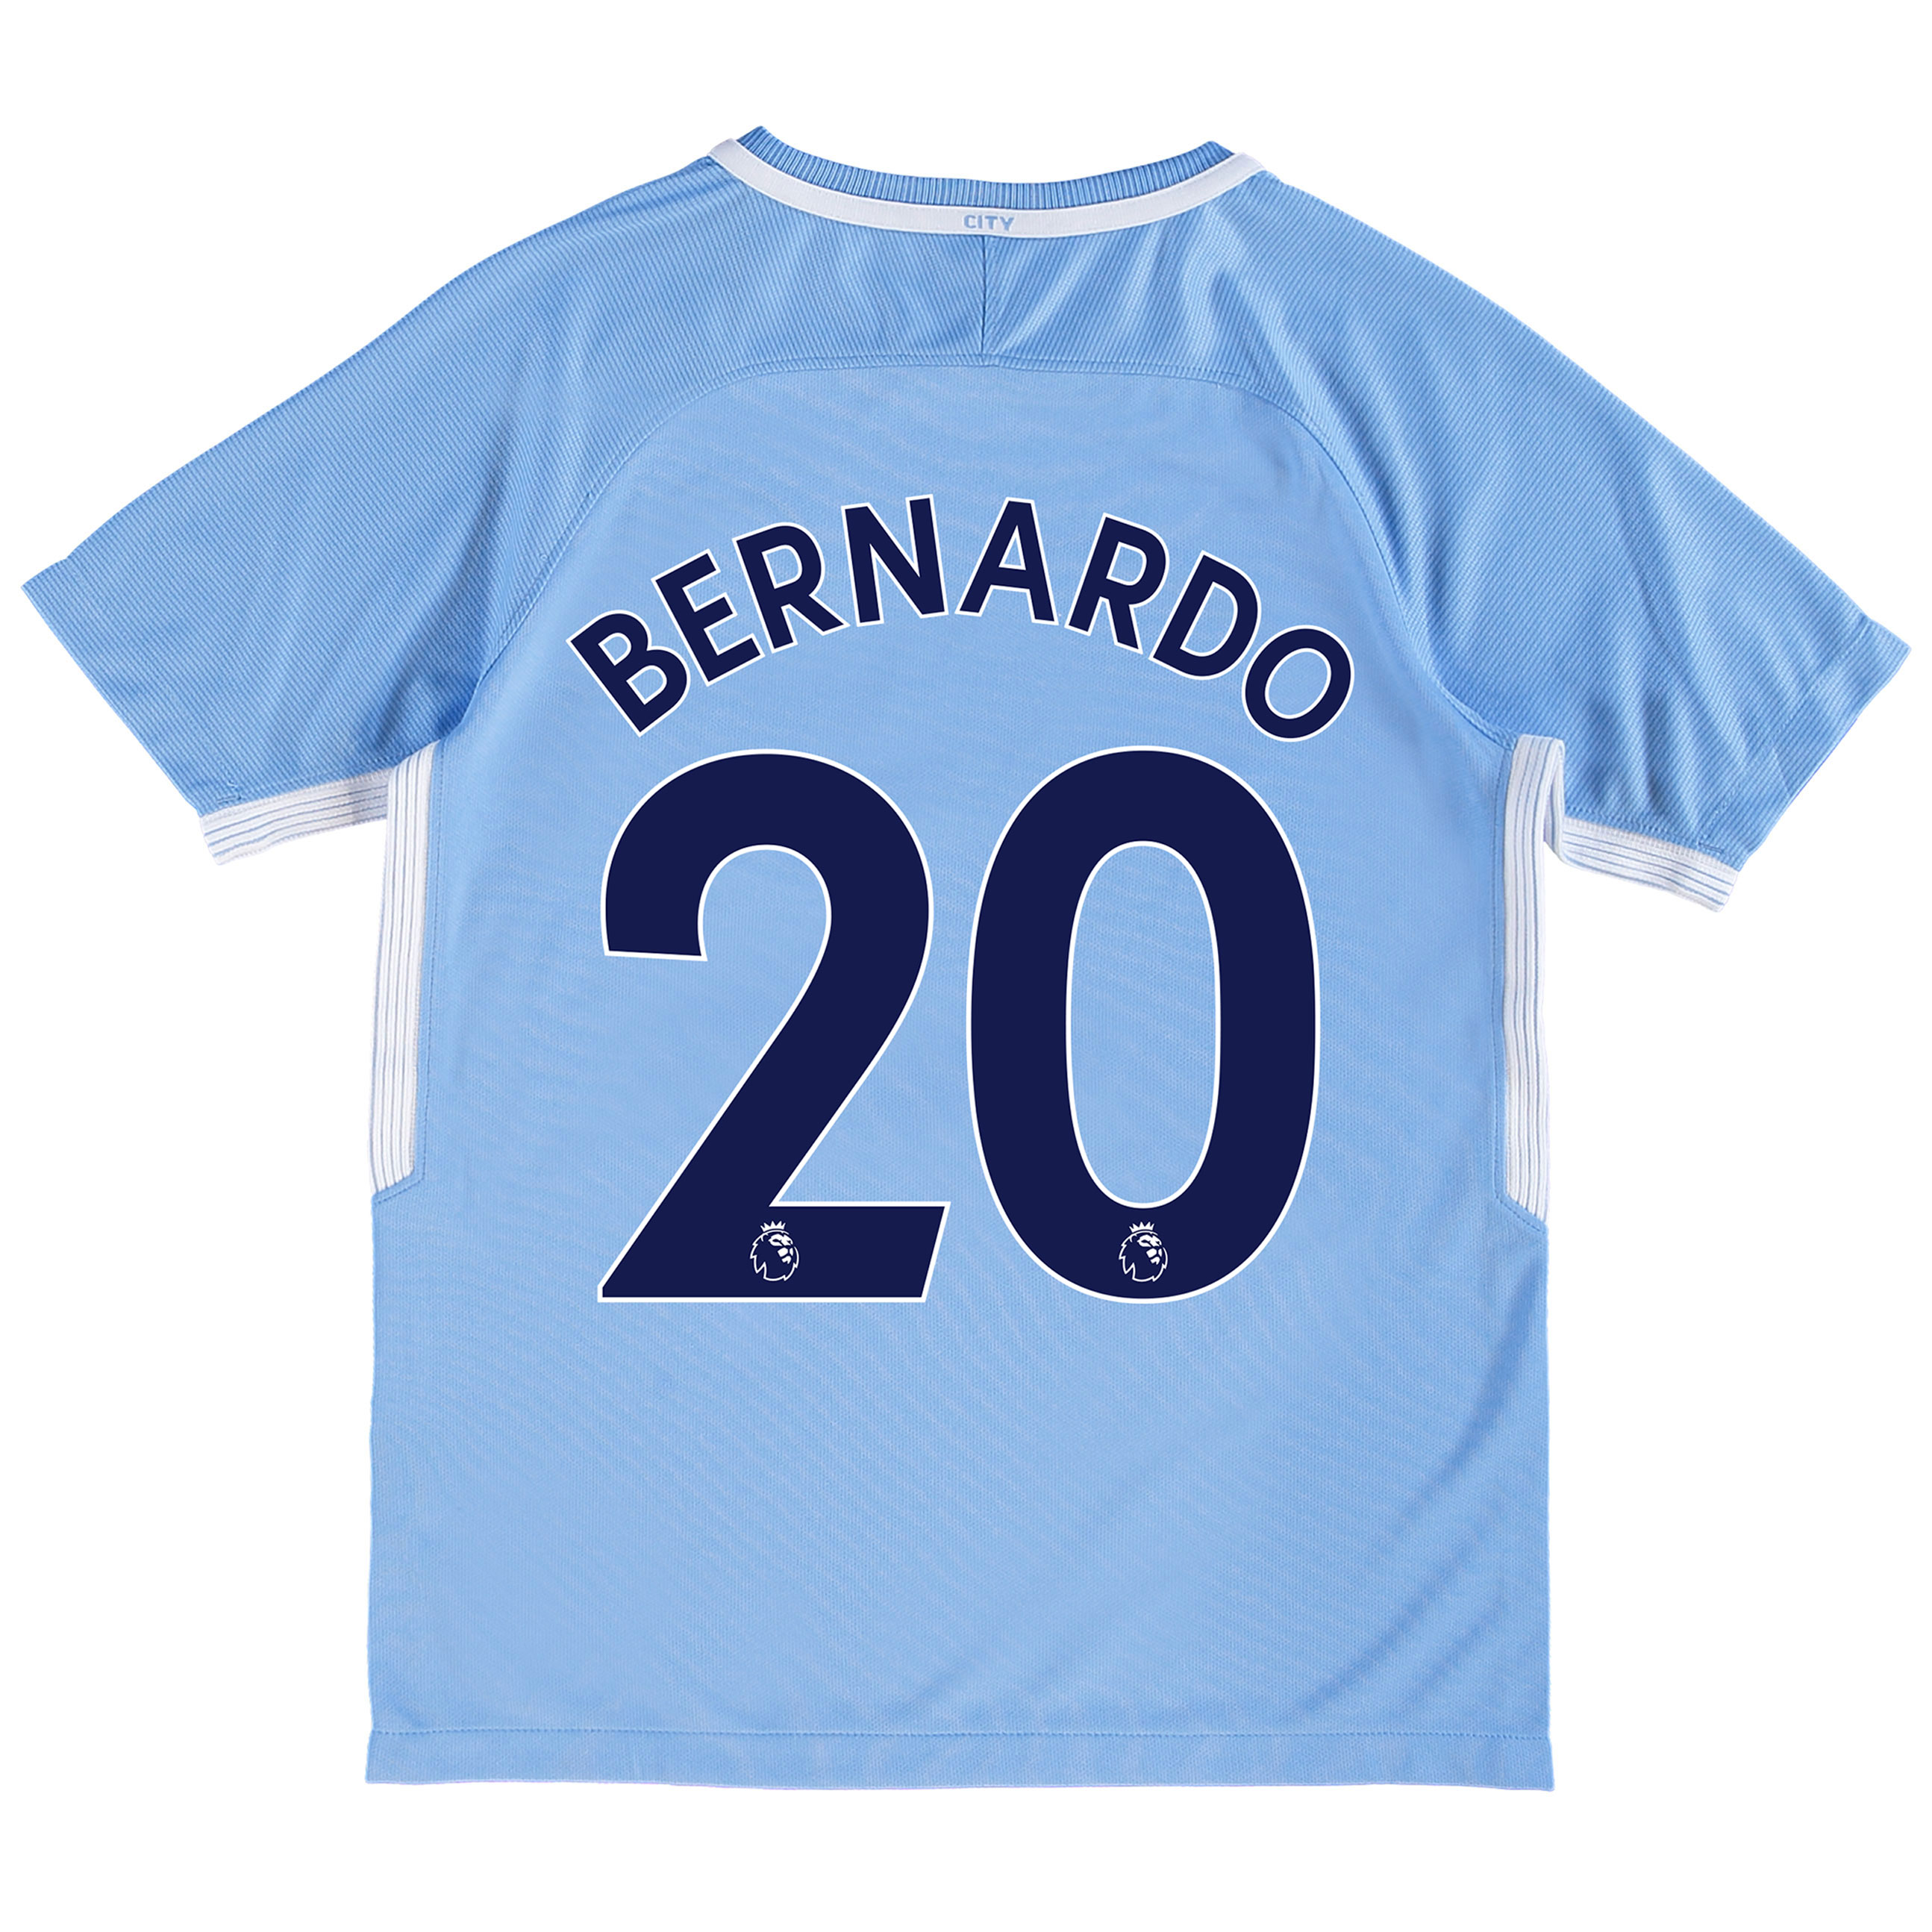 Manchester City Home Stadium Shirt 2017-18 - Kids with Bernardo 20 pri